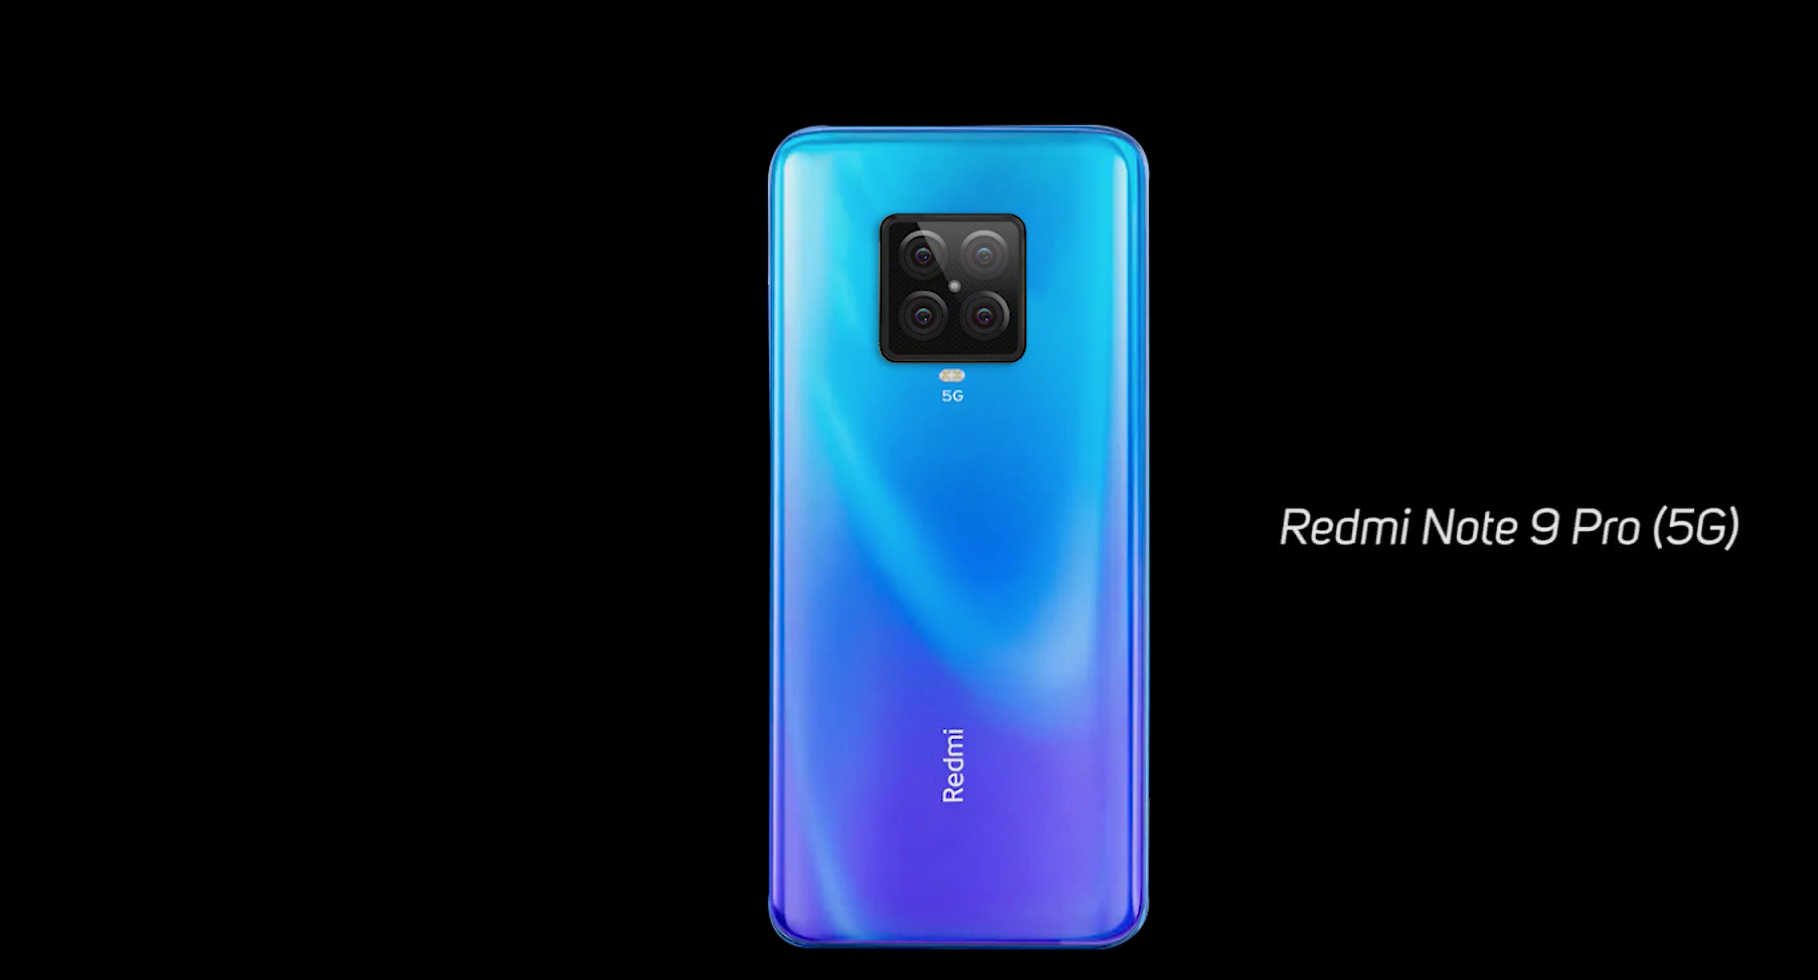 Redmi Note 9 Pro Offers Fast Charging Support